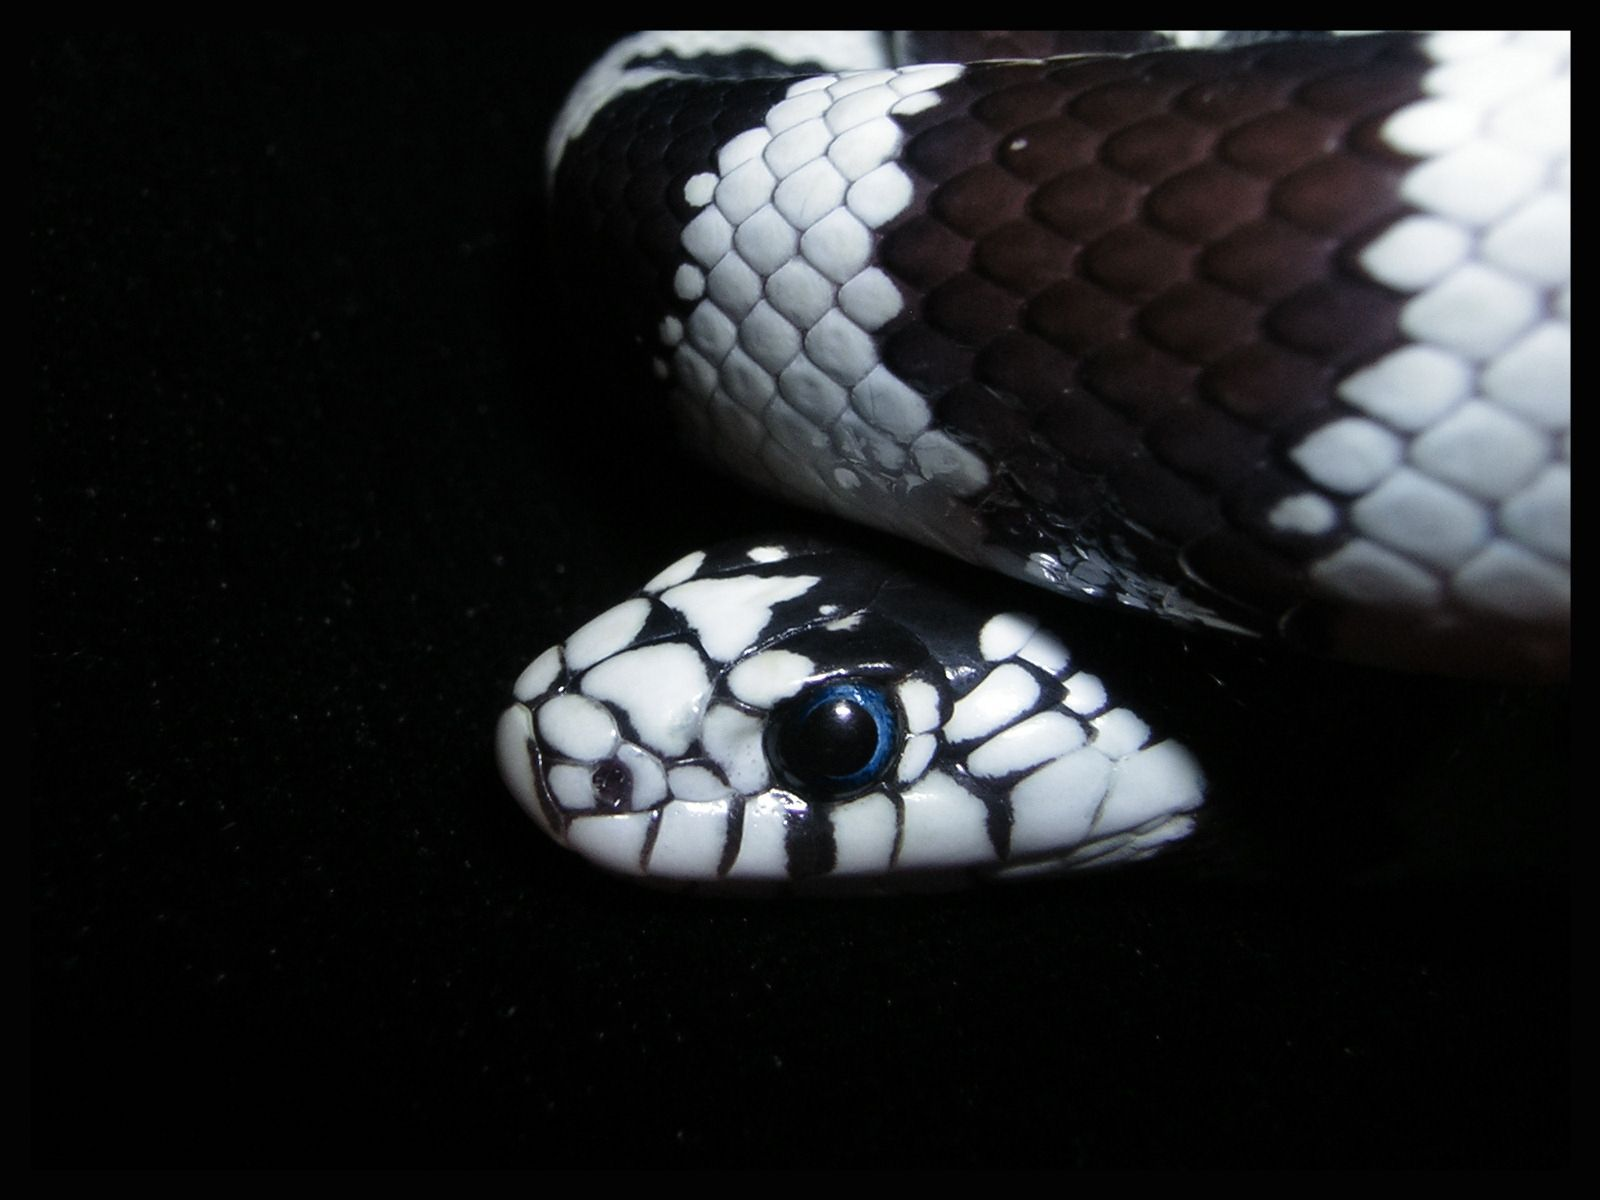 Hd Snake Wallpaper X Black Snake Wallpapers  Wallpapers Adorable Wallpapers